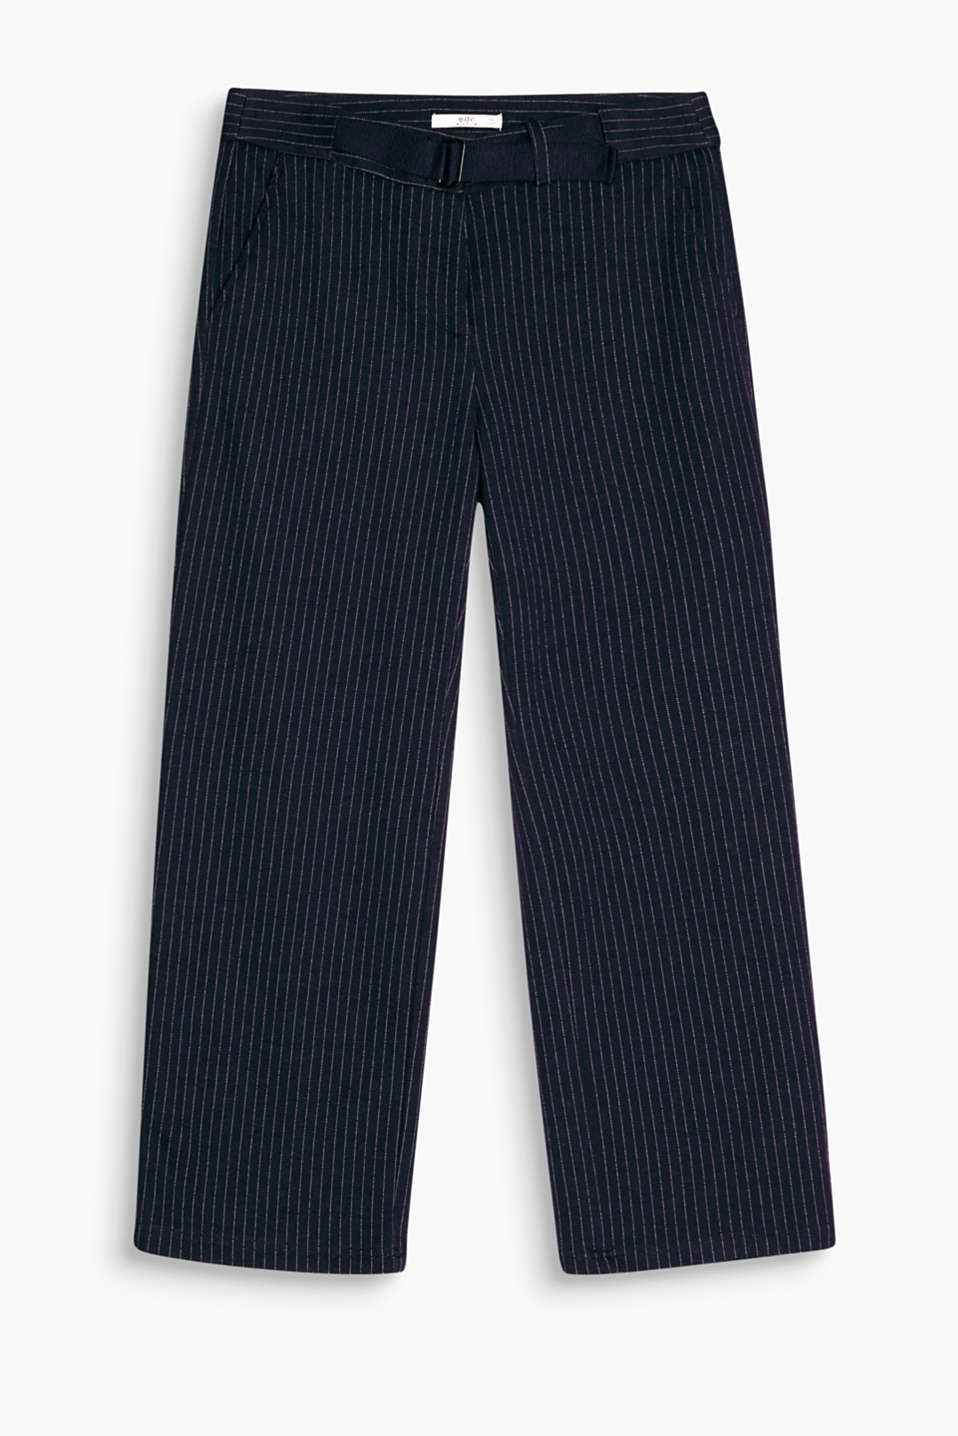 Cropped stretch jersey trousers with classic pinstripes in a sophisticated look yet still super comfortable